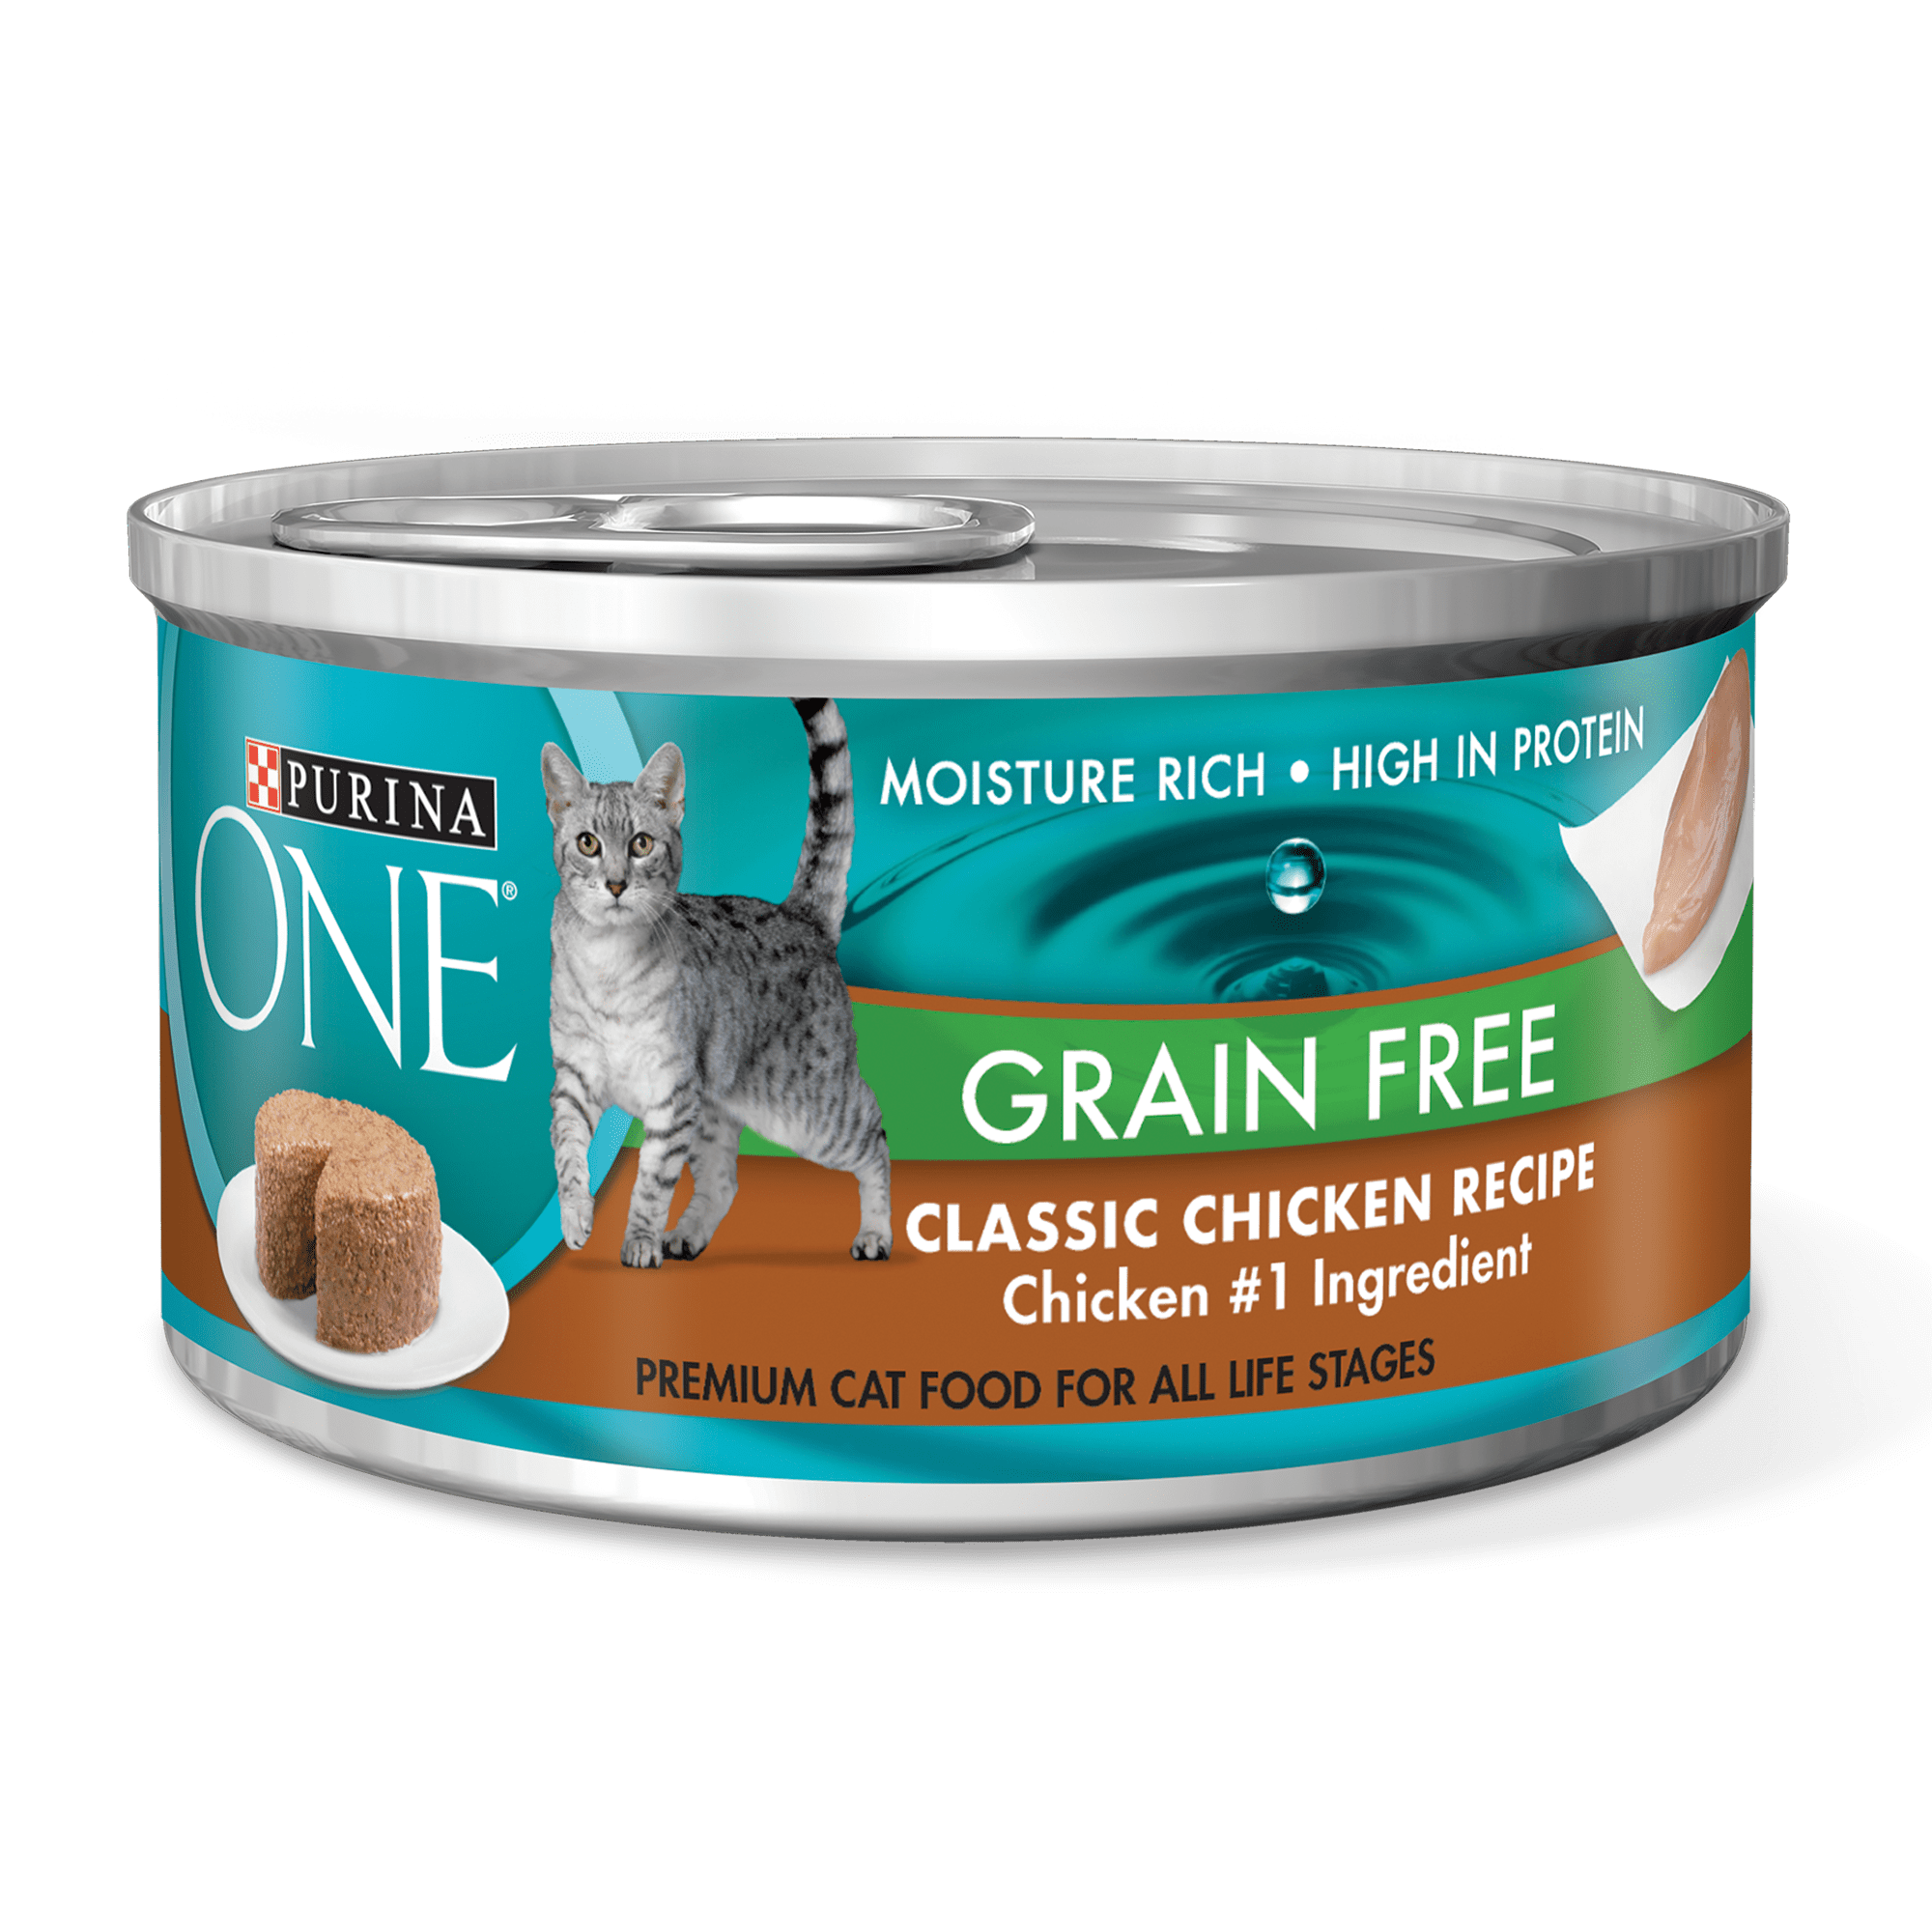 Purina one grain free classic pate chicken recipe wet cat food 3 purina one grain free classic pate chicken recipe wet cat food 3 oz pull top can walmart forumfinder Images